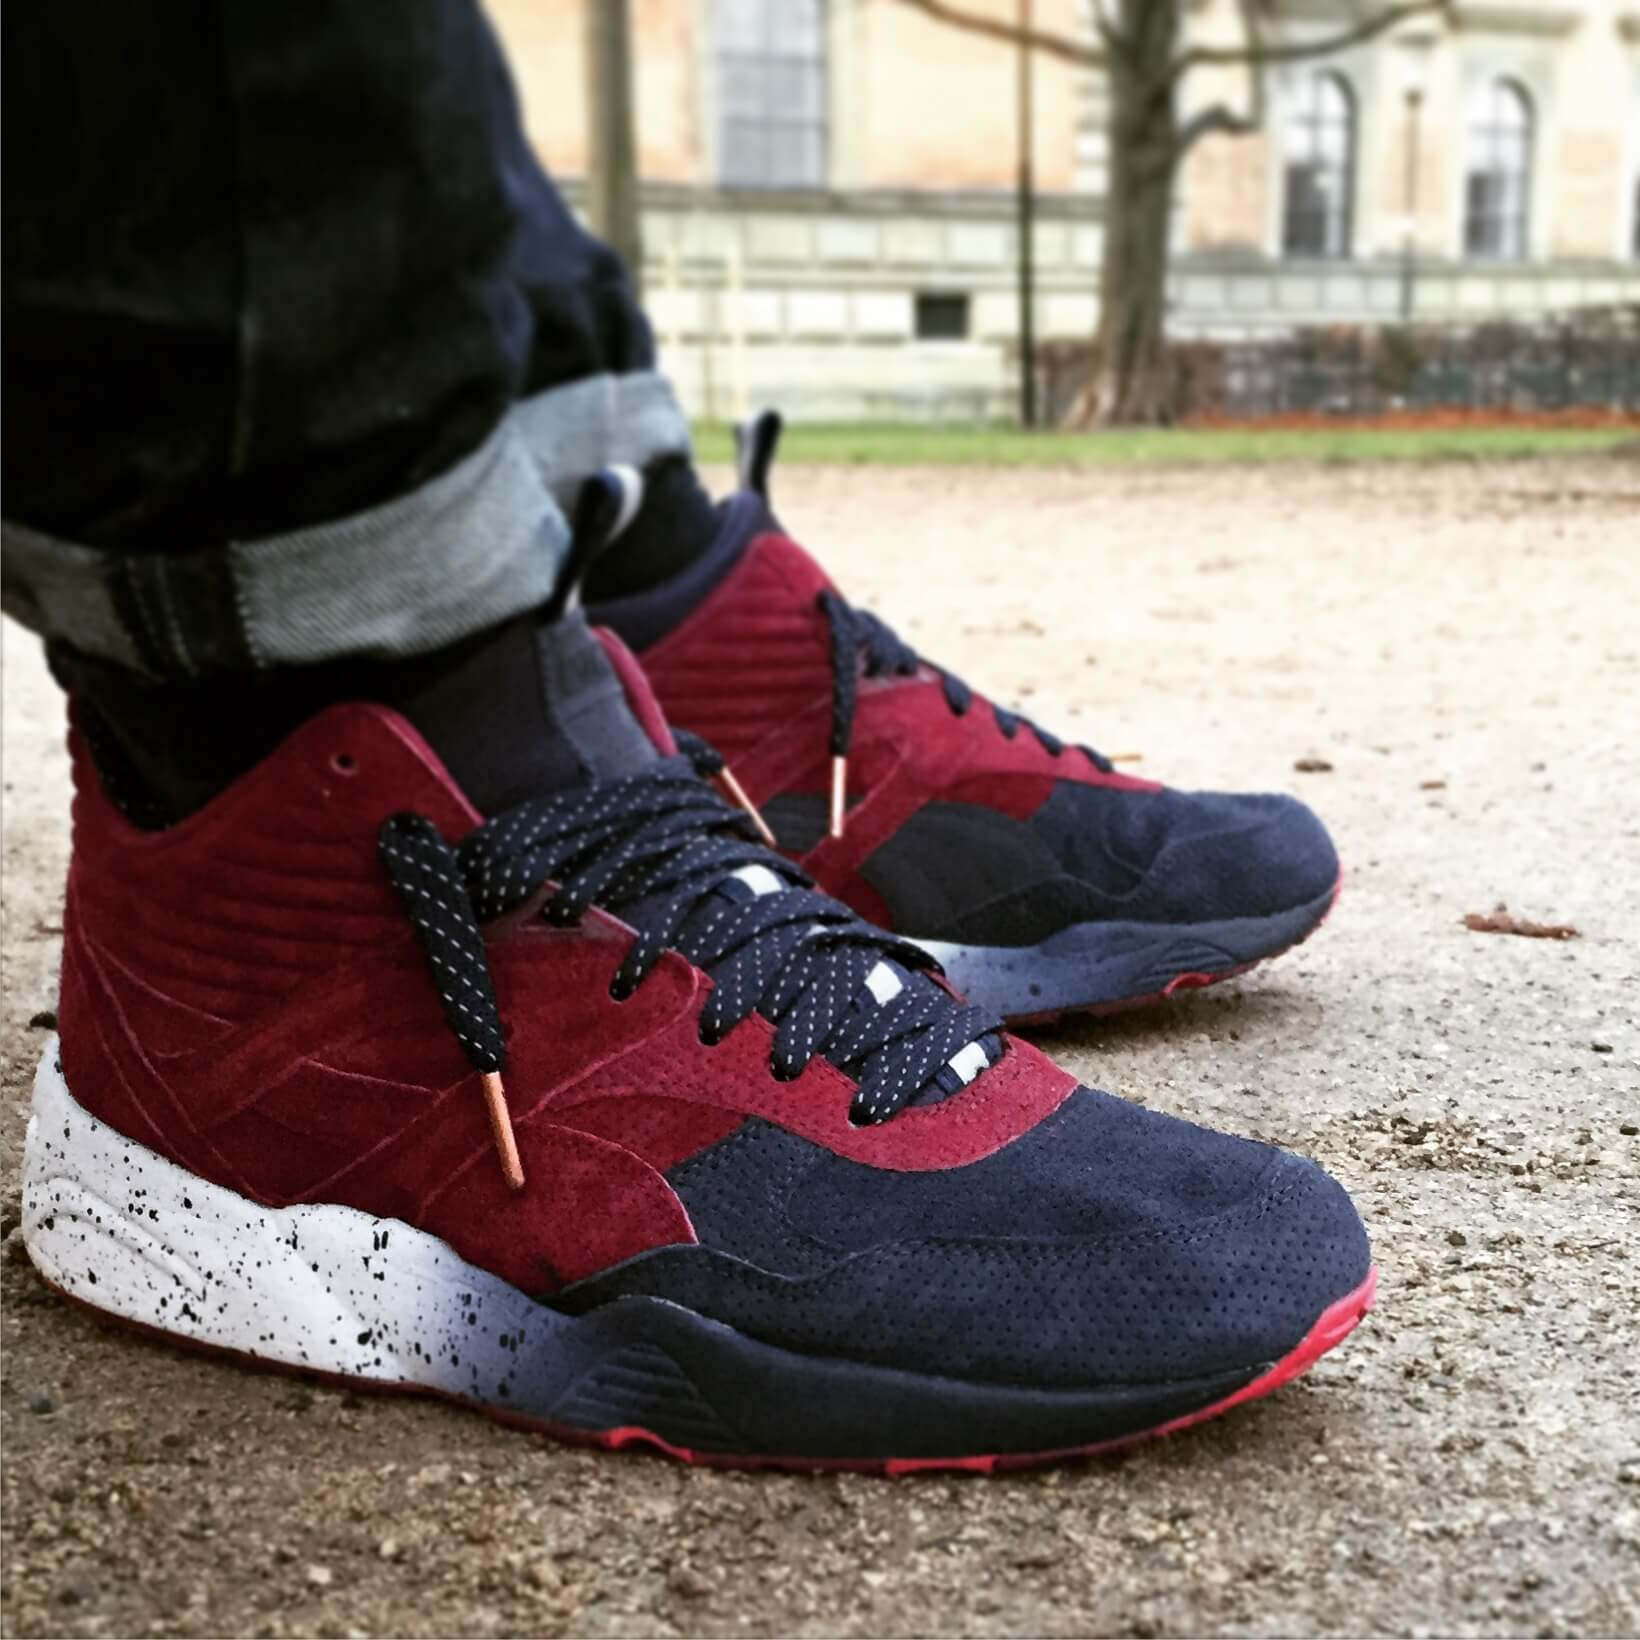 Puma-Ronnie-Fieg-x-R698-Mid-Sakura-Project-Side-View-Benstah-Onfeet